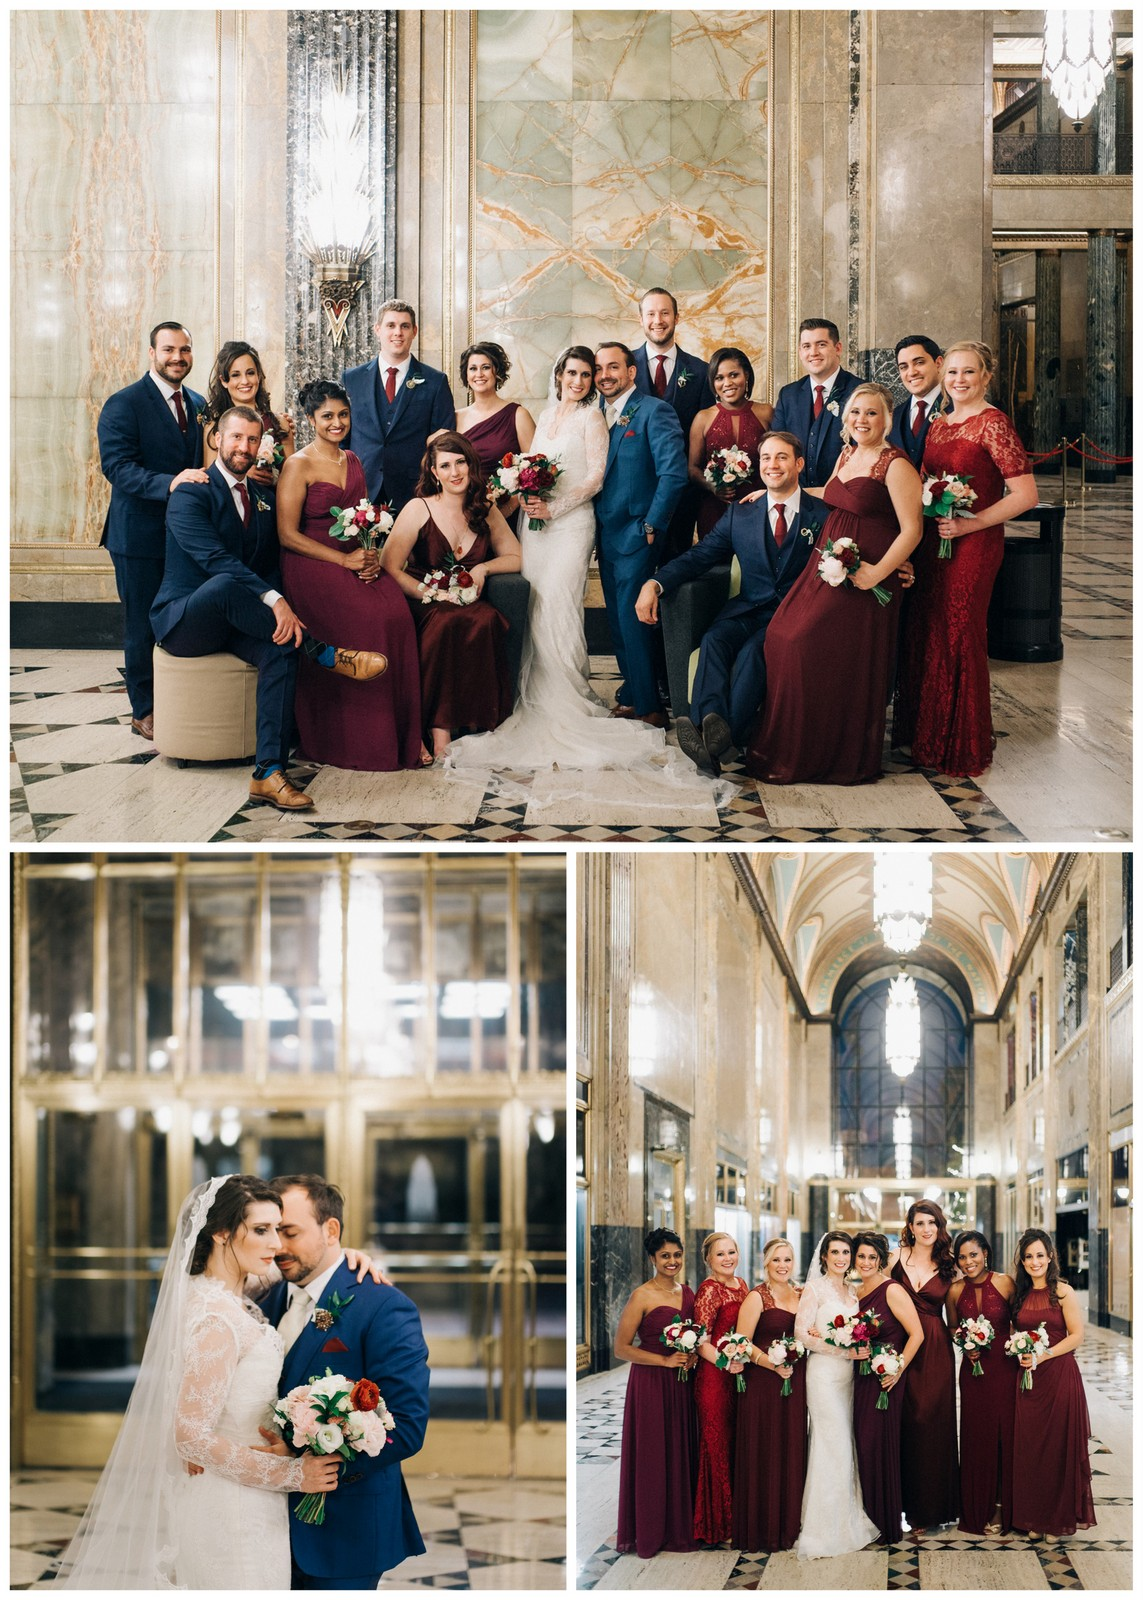 JS Weddings and Events, Grand Rapids Wedding planner and Michigan Floral Designer. An old world vintage winter wedding in Downtown Detroit at the Colony Club with gold, Burgundy and navy blue.